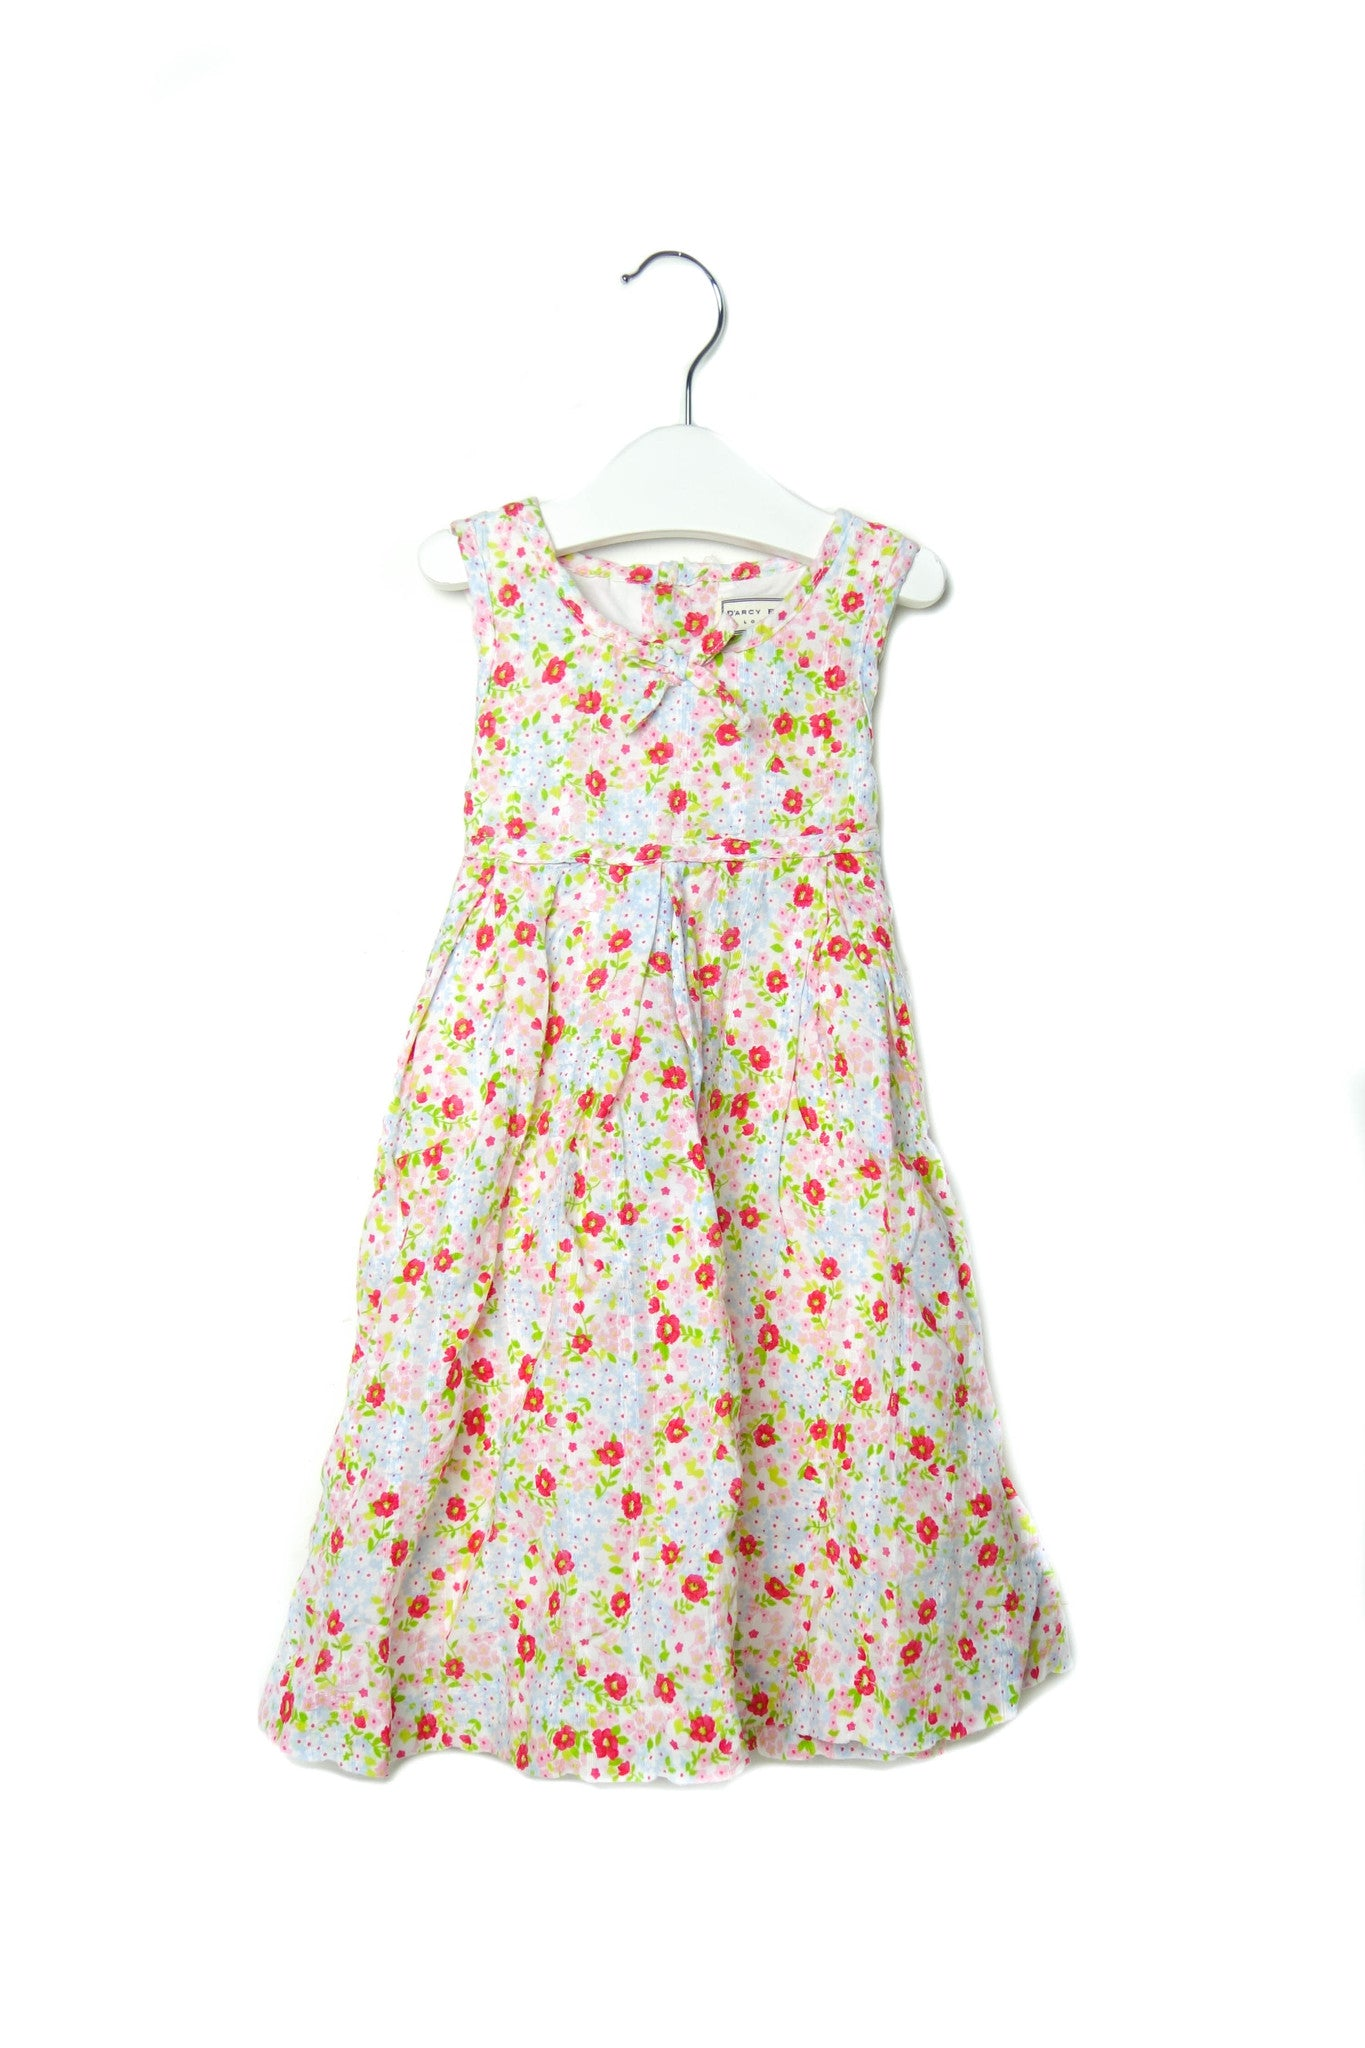 10001481~Dress 18M, Darcy Brown at Retykle - Online Baby & Kids Clothing Up to 90% Off